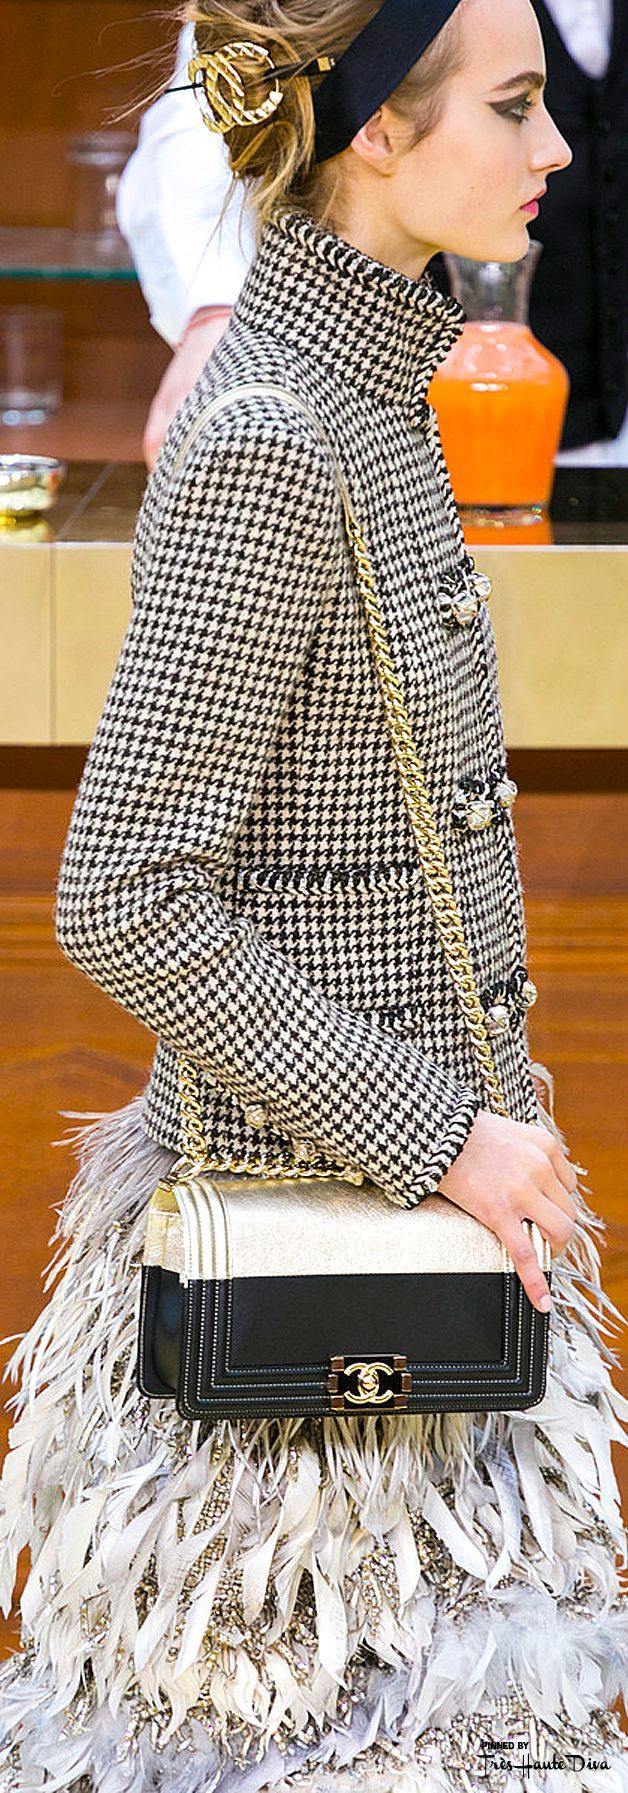 """<a class=""""pintag searchlink"""" data-query=""""#PFW"""" data-type=""""hashtag"""" href=""""/search/?q=#PFW&rs=hashtag"""" rel=""""nofollow"""" title=""""#PFW search Pinterest"""">#PFW</a> Chanel Fall 2015 RTW detail ♔THD♔ http://louisvuitton.offthedome.us/"""